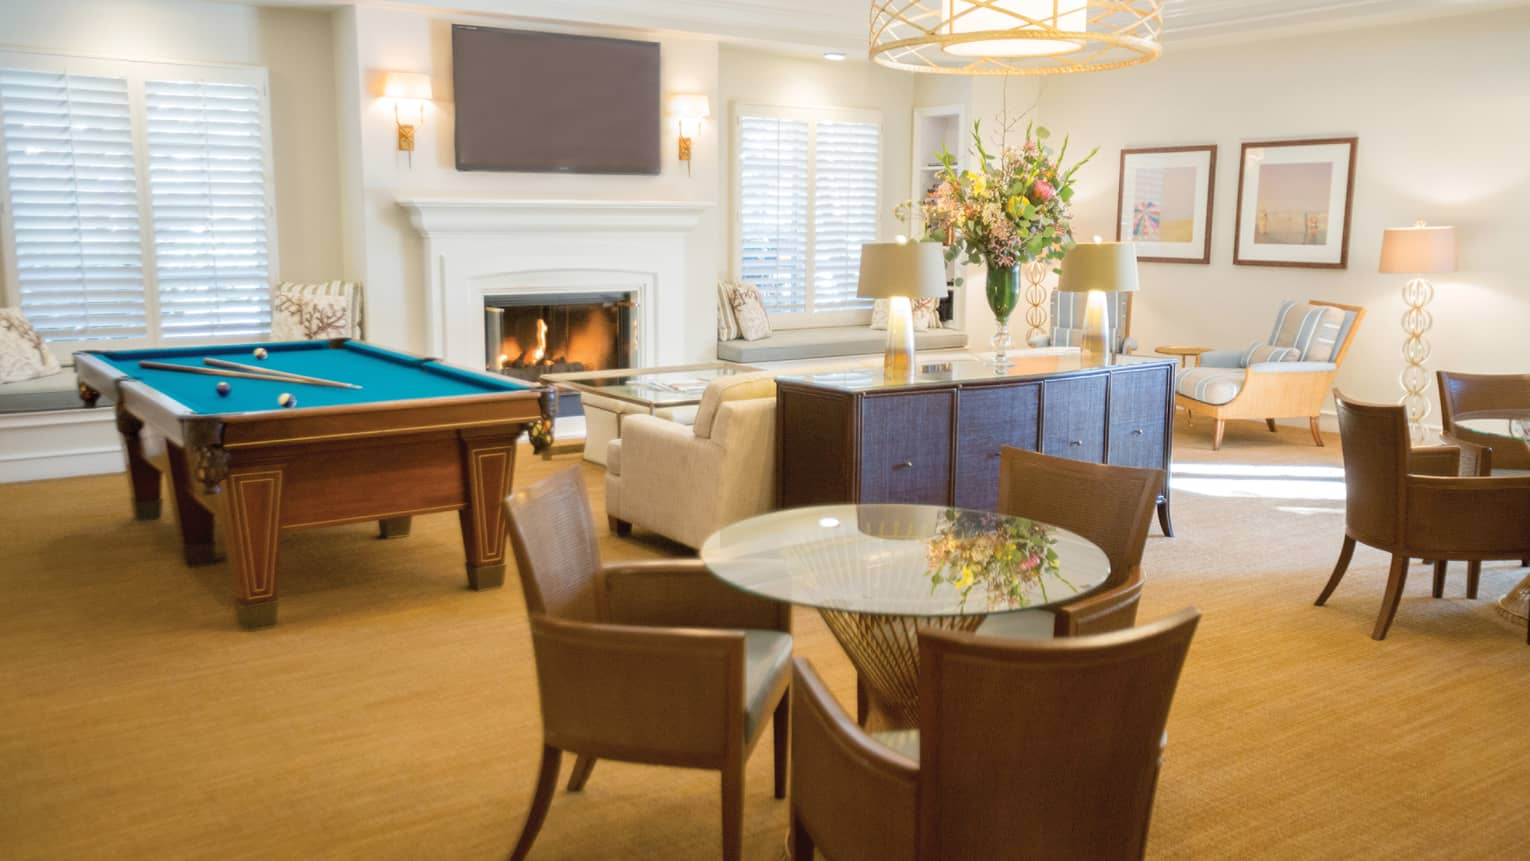 Hotel recreation lounge with pool table, fireplace and sofa, round glass tables with chairs